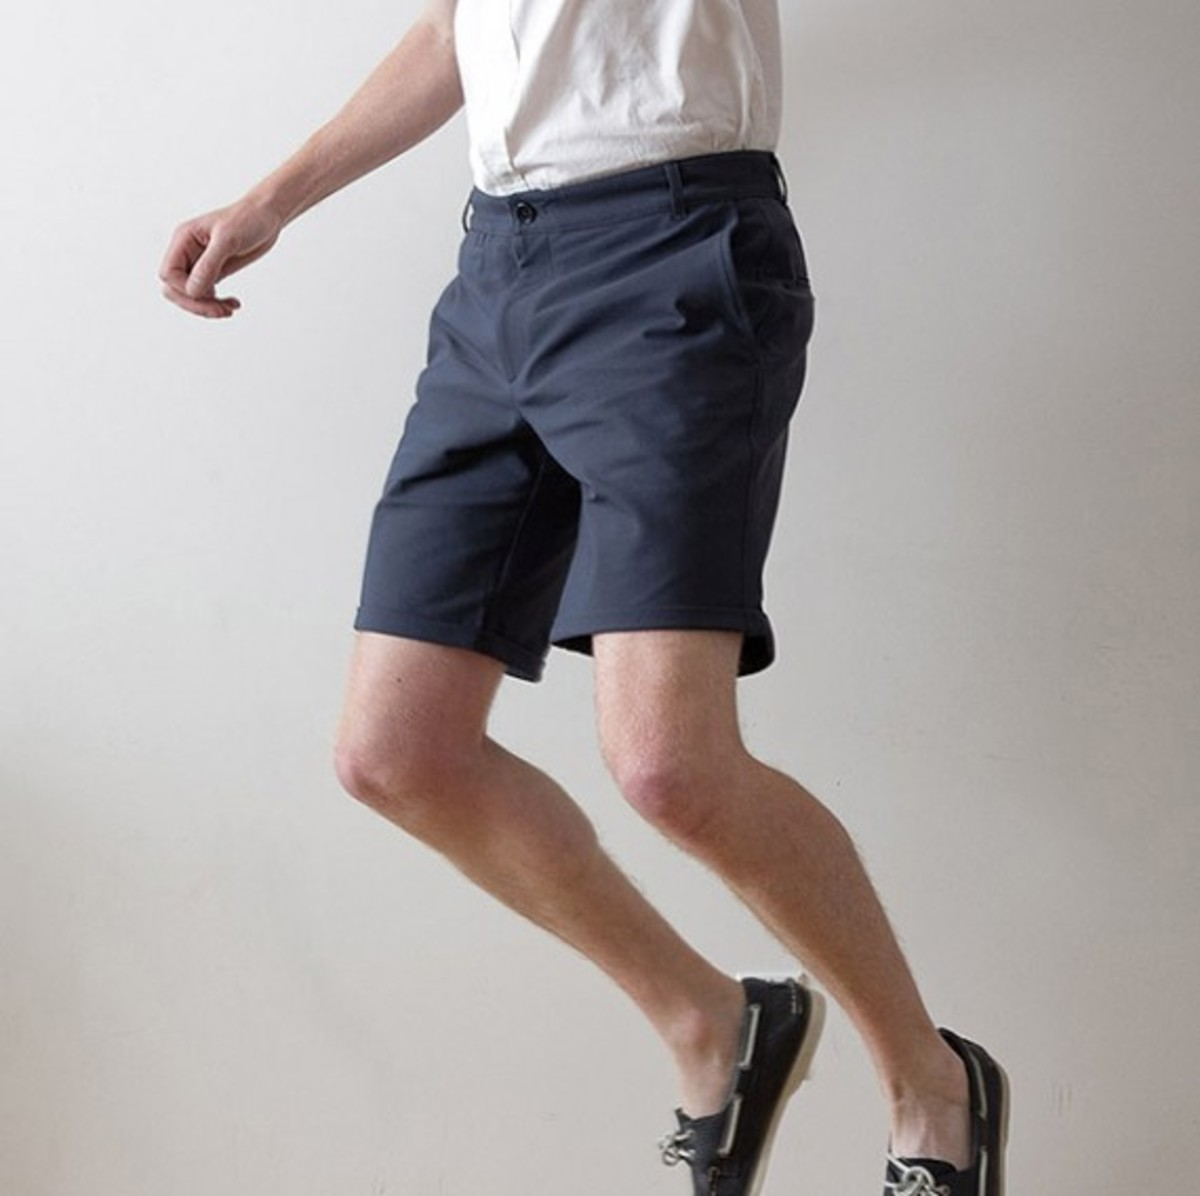 wurst-editions-outlier-shorts-emily-pork-store-06